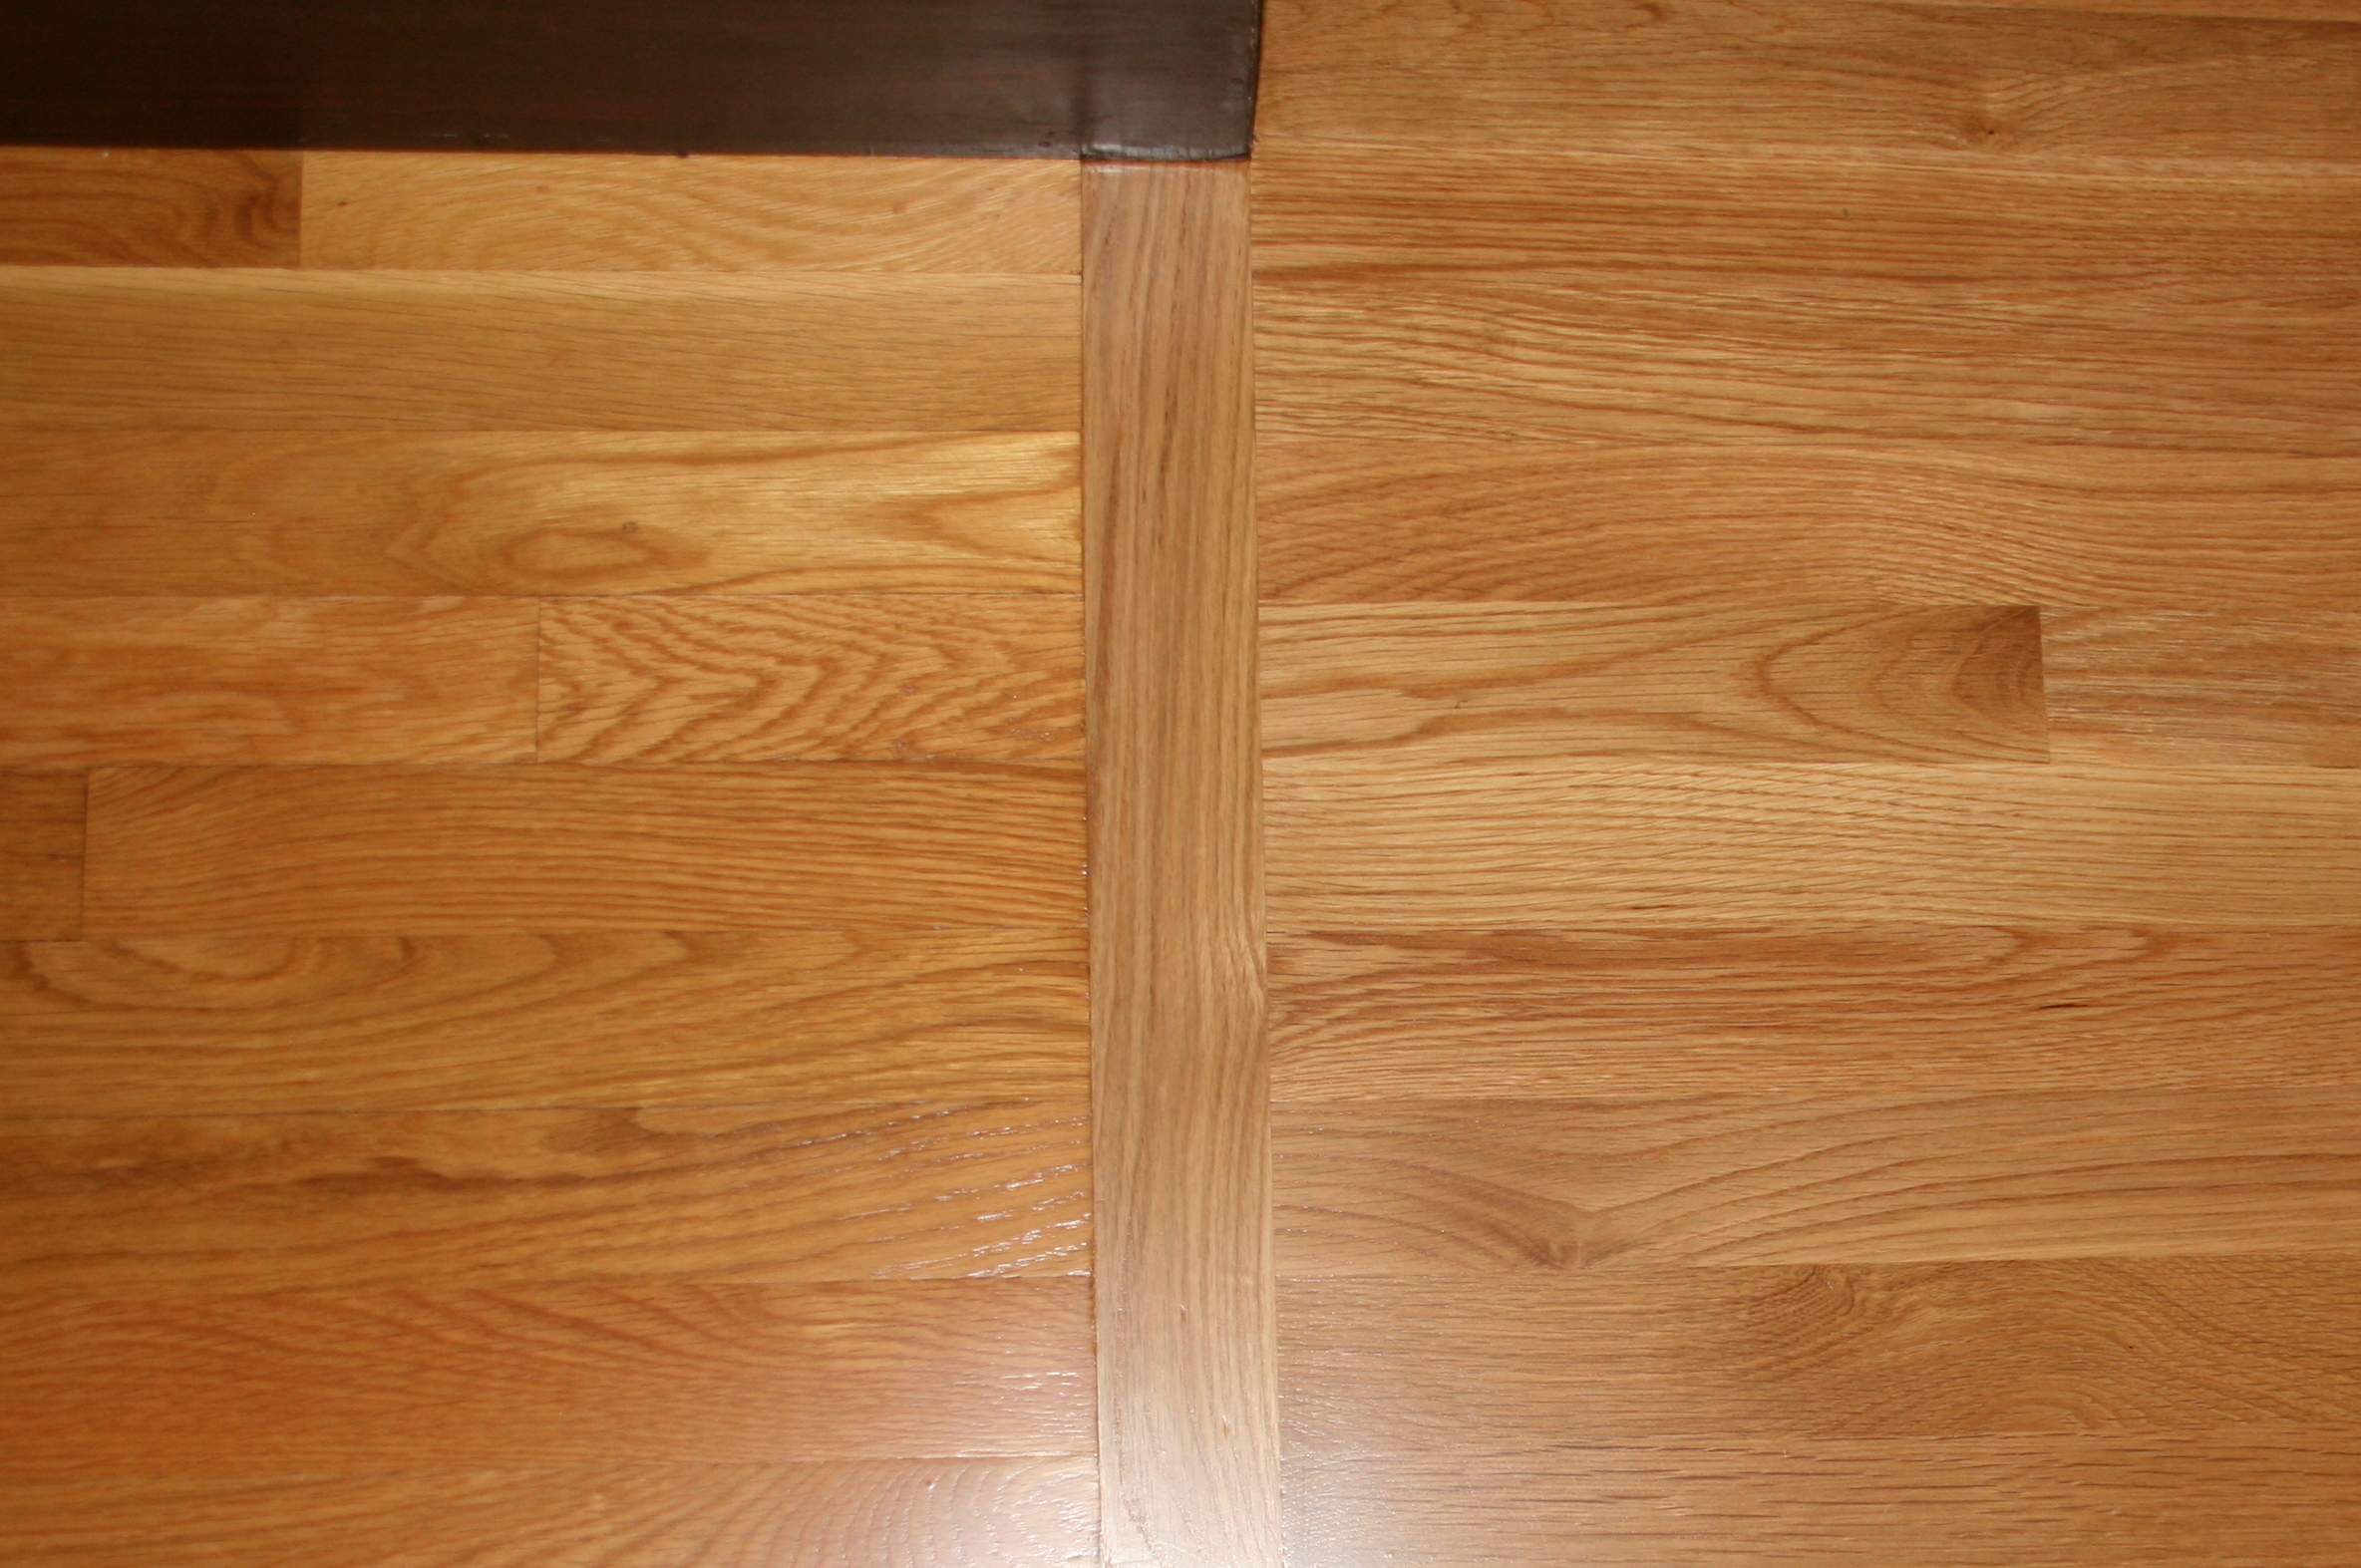 Color matching hardwood floors duffyfloors for Where to get hardwood floors